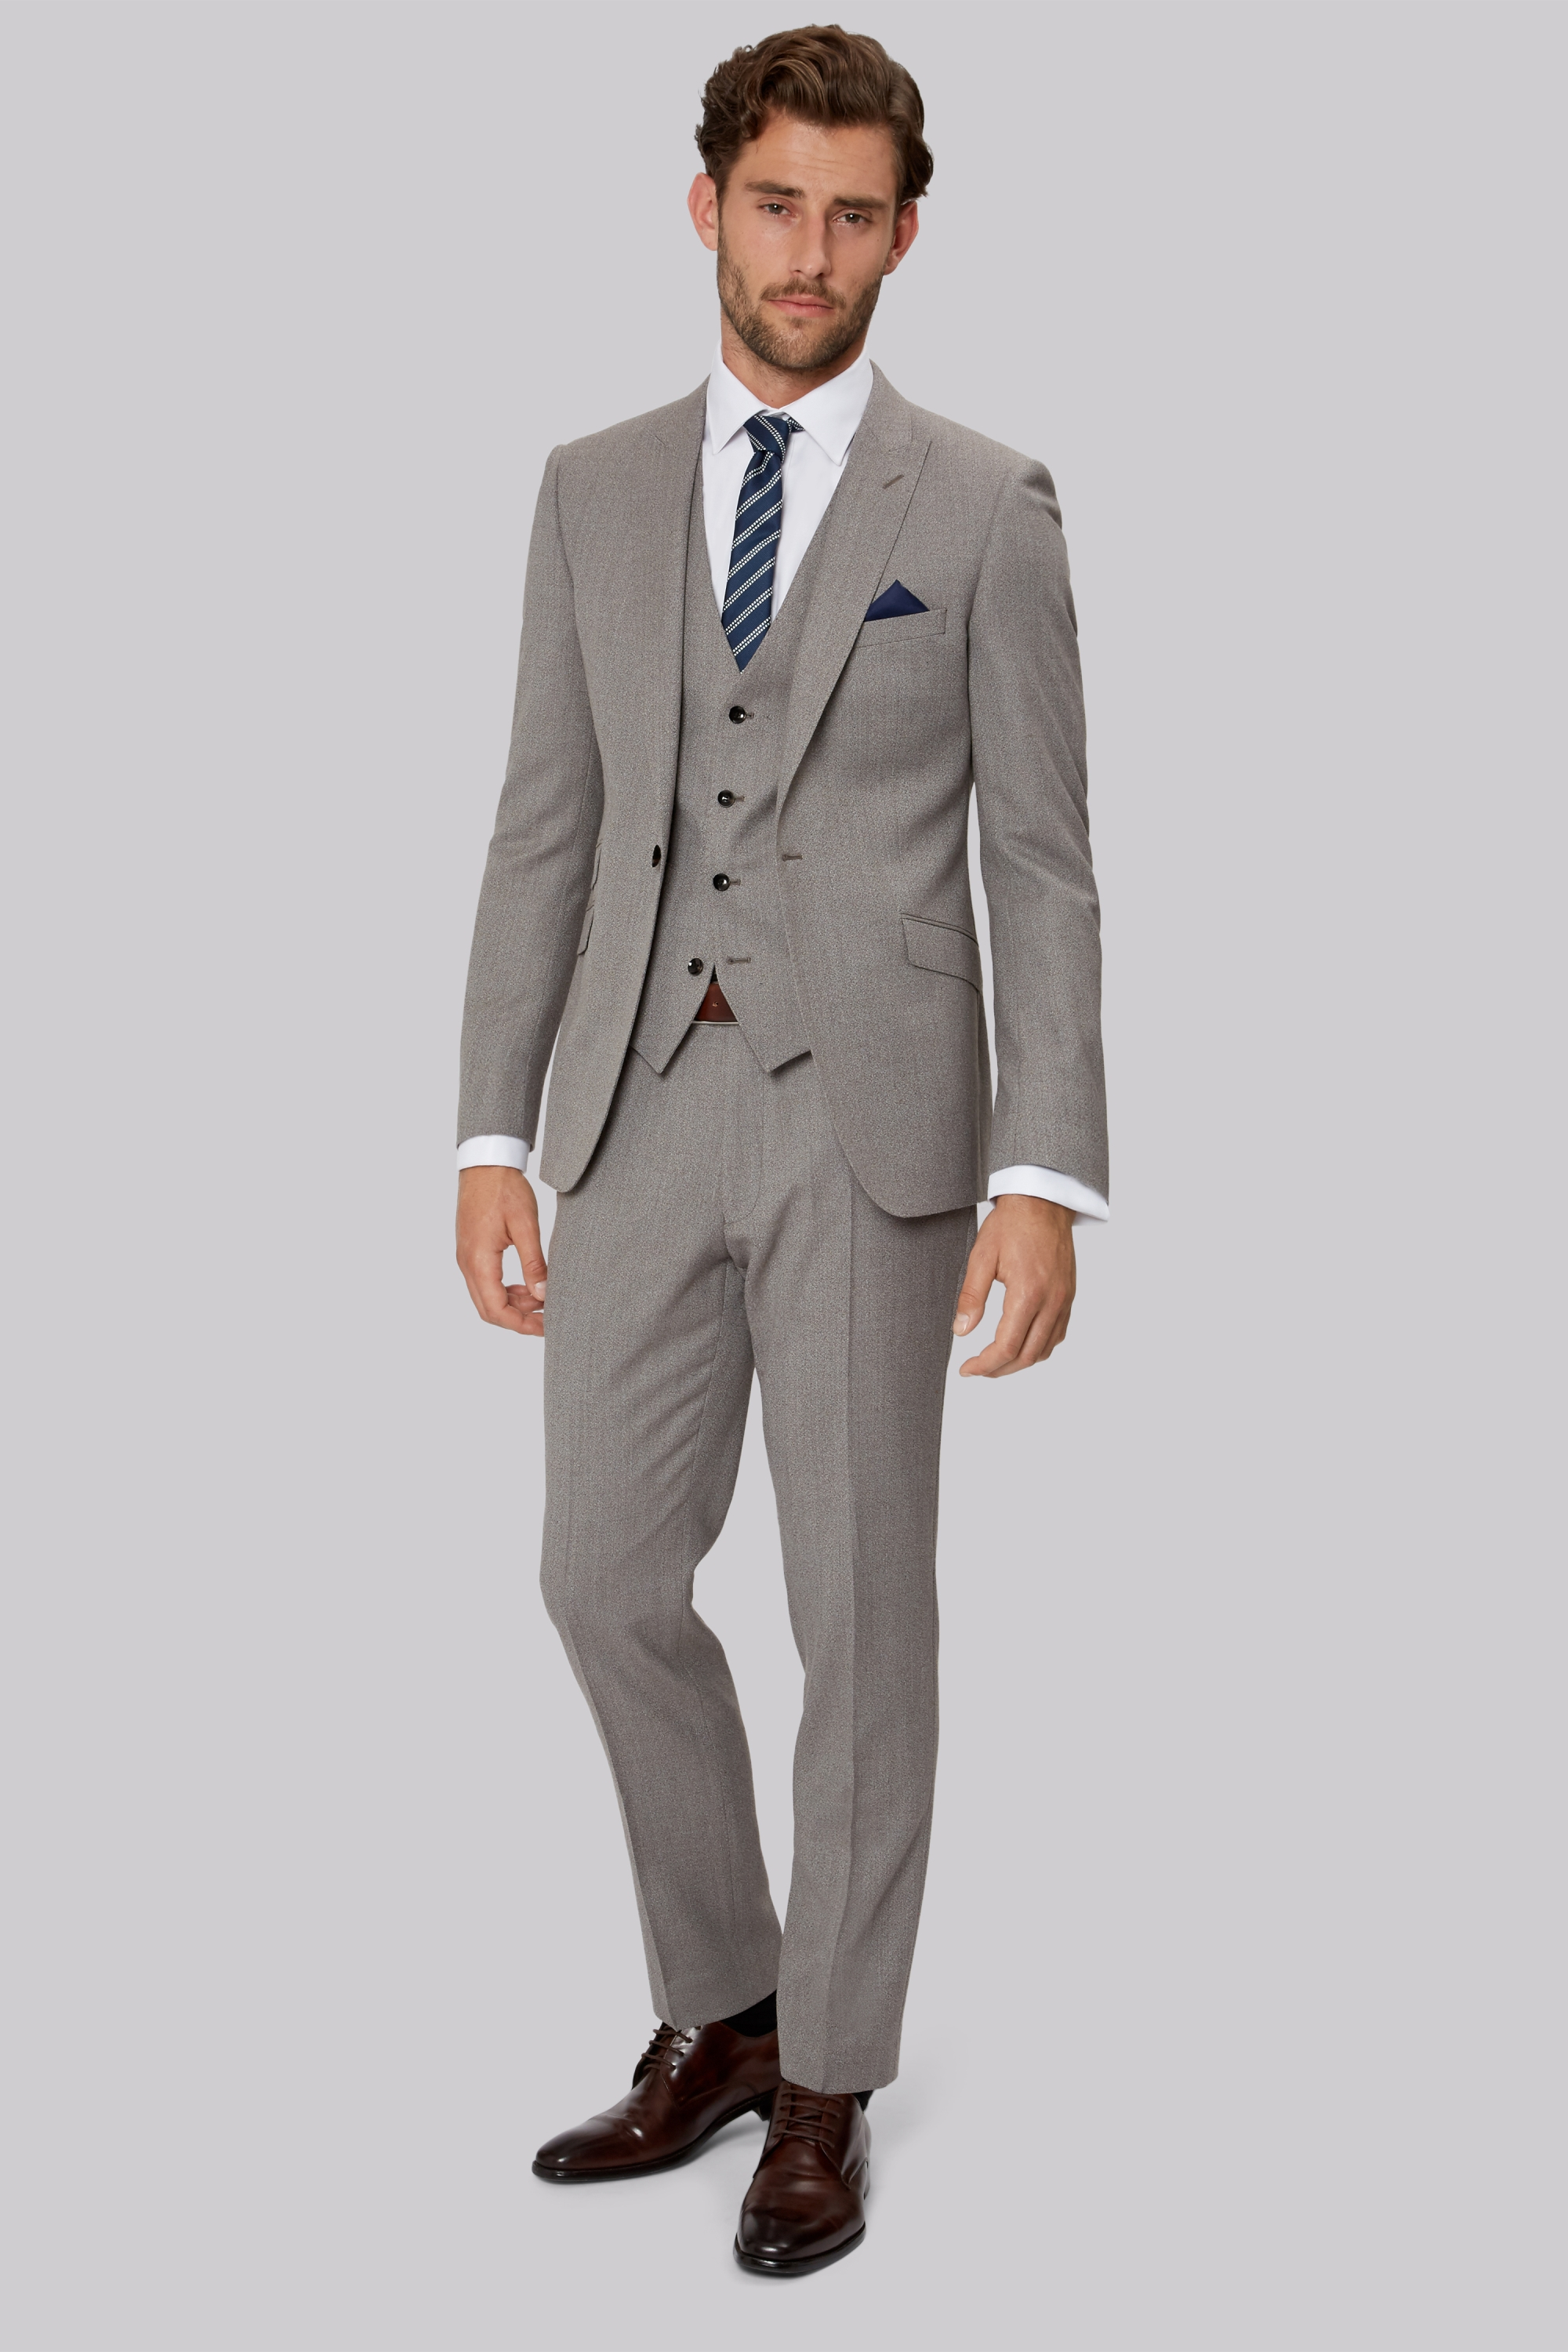 Men's Slim Fit Suits | Moss Bros